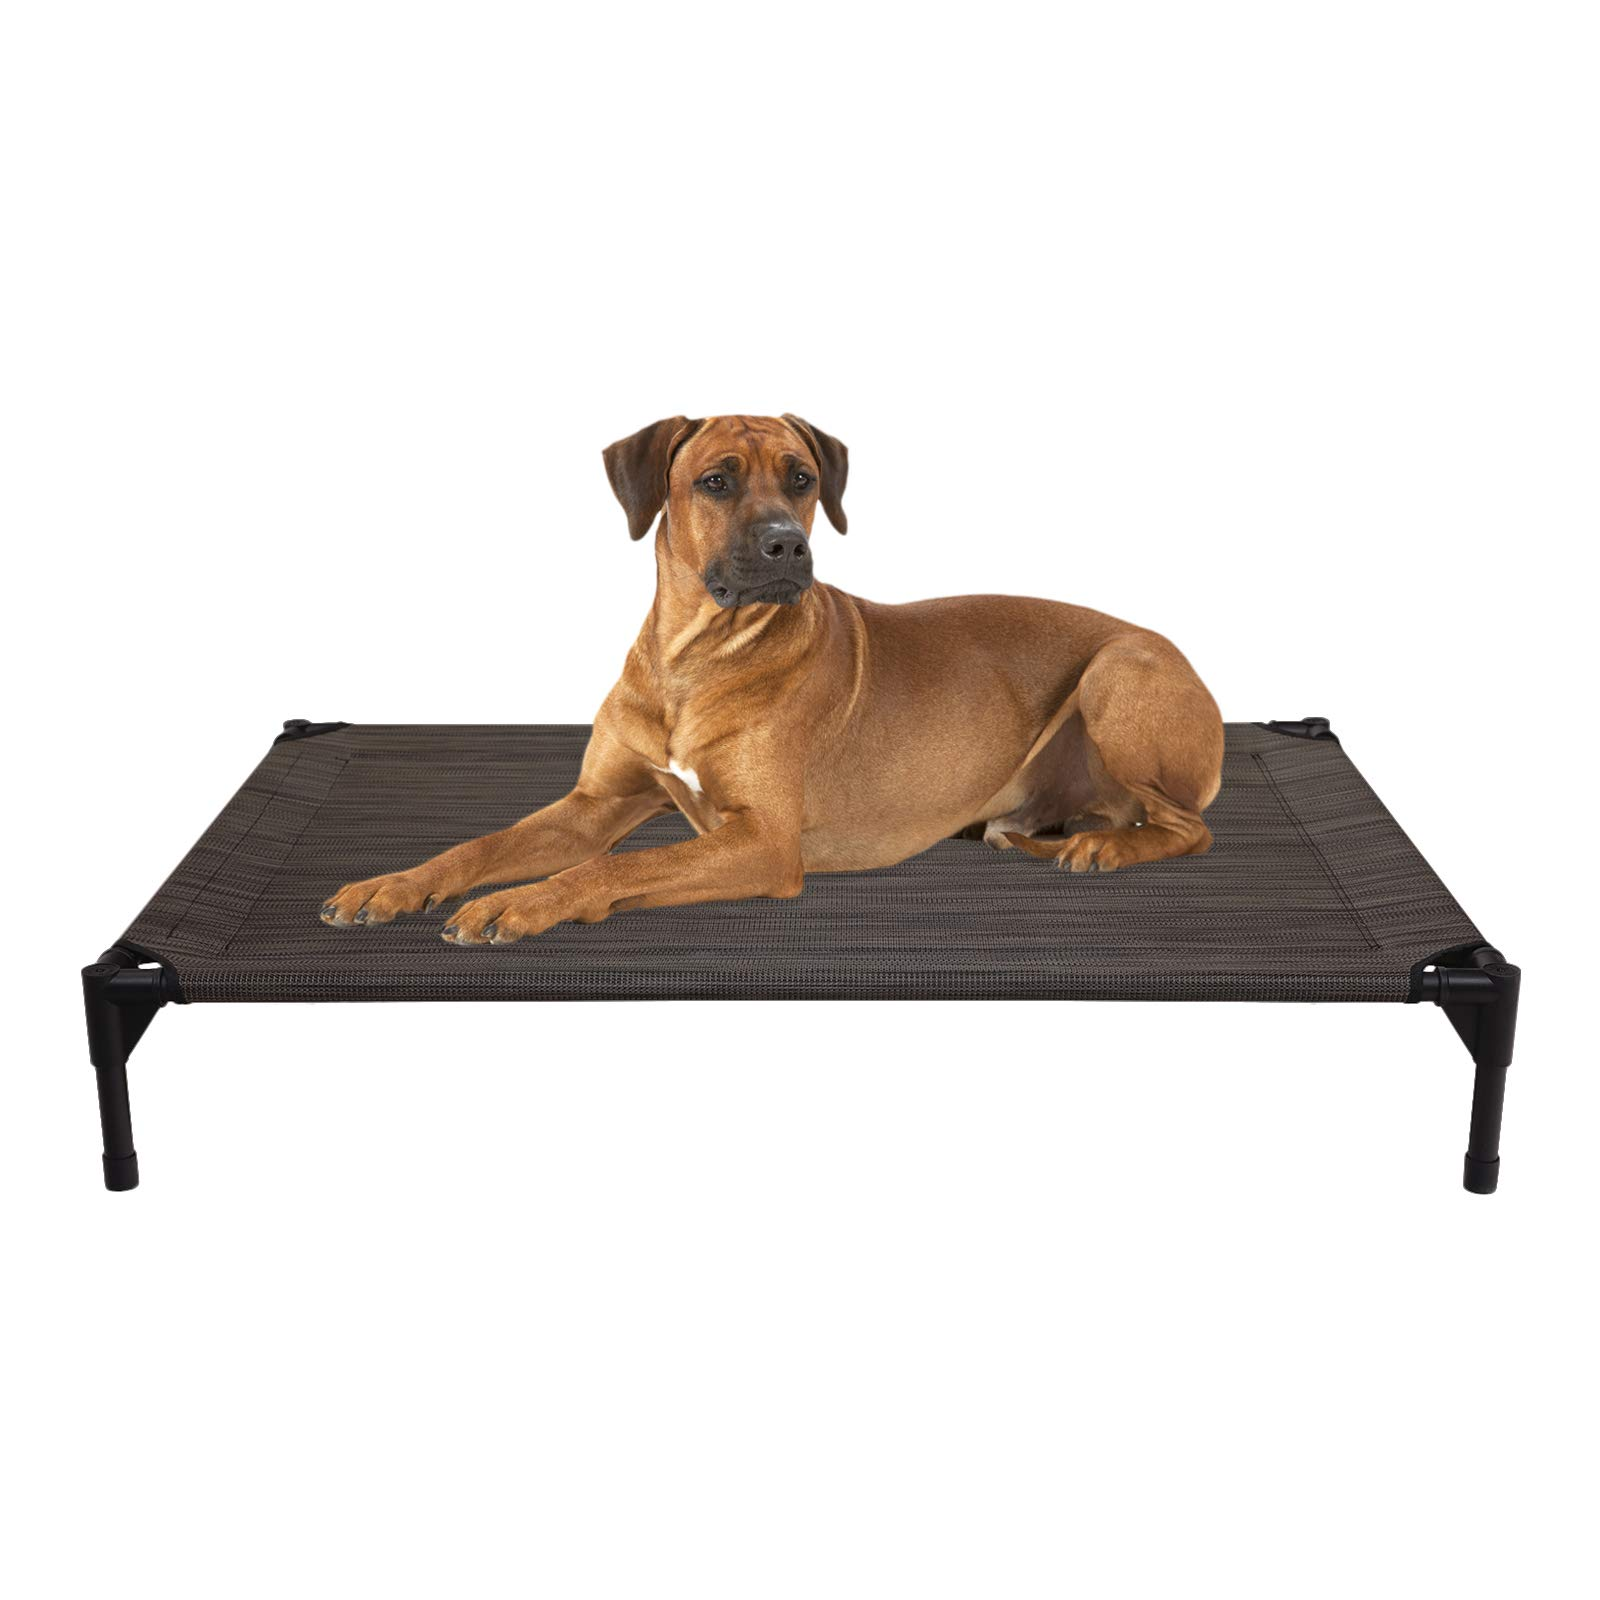 Veehoo Cooling Elevated Dog Bed - Portable Raised Pet Cot with Washable & Breathable Mesh, No-Slip Rubber Feet for Indoor & Outdoor Use, Oversize Package, Large | Brown